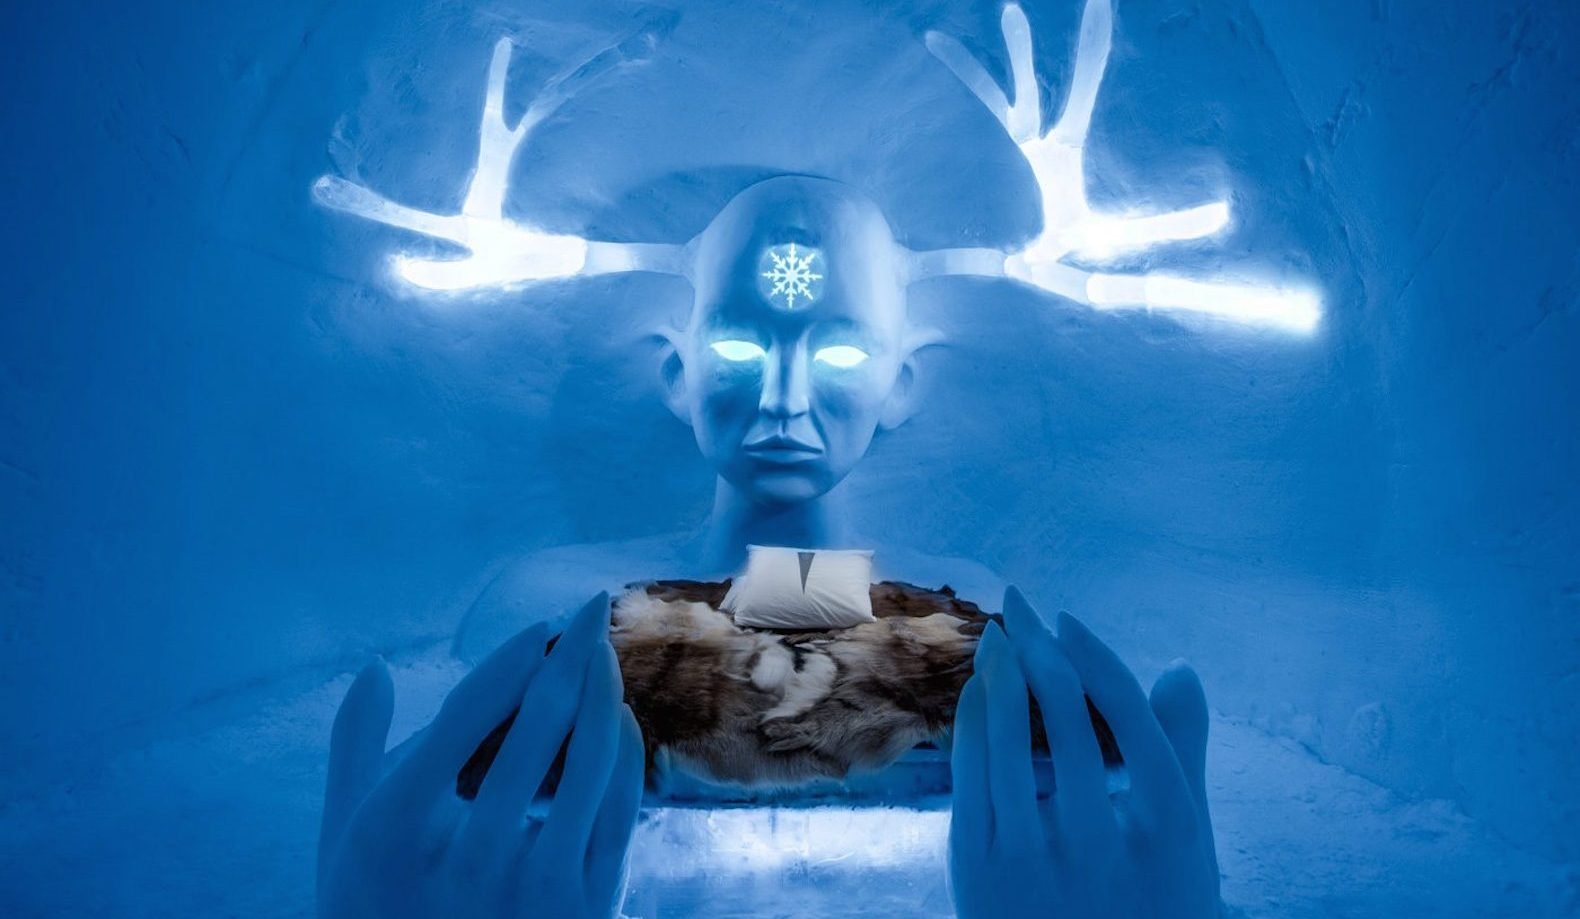 Sweden's Ice hotel is the place to be in this heat wave